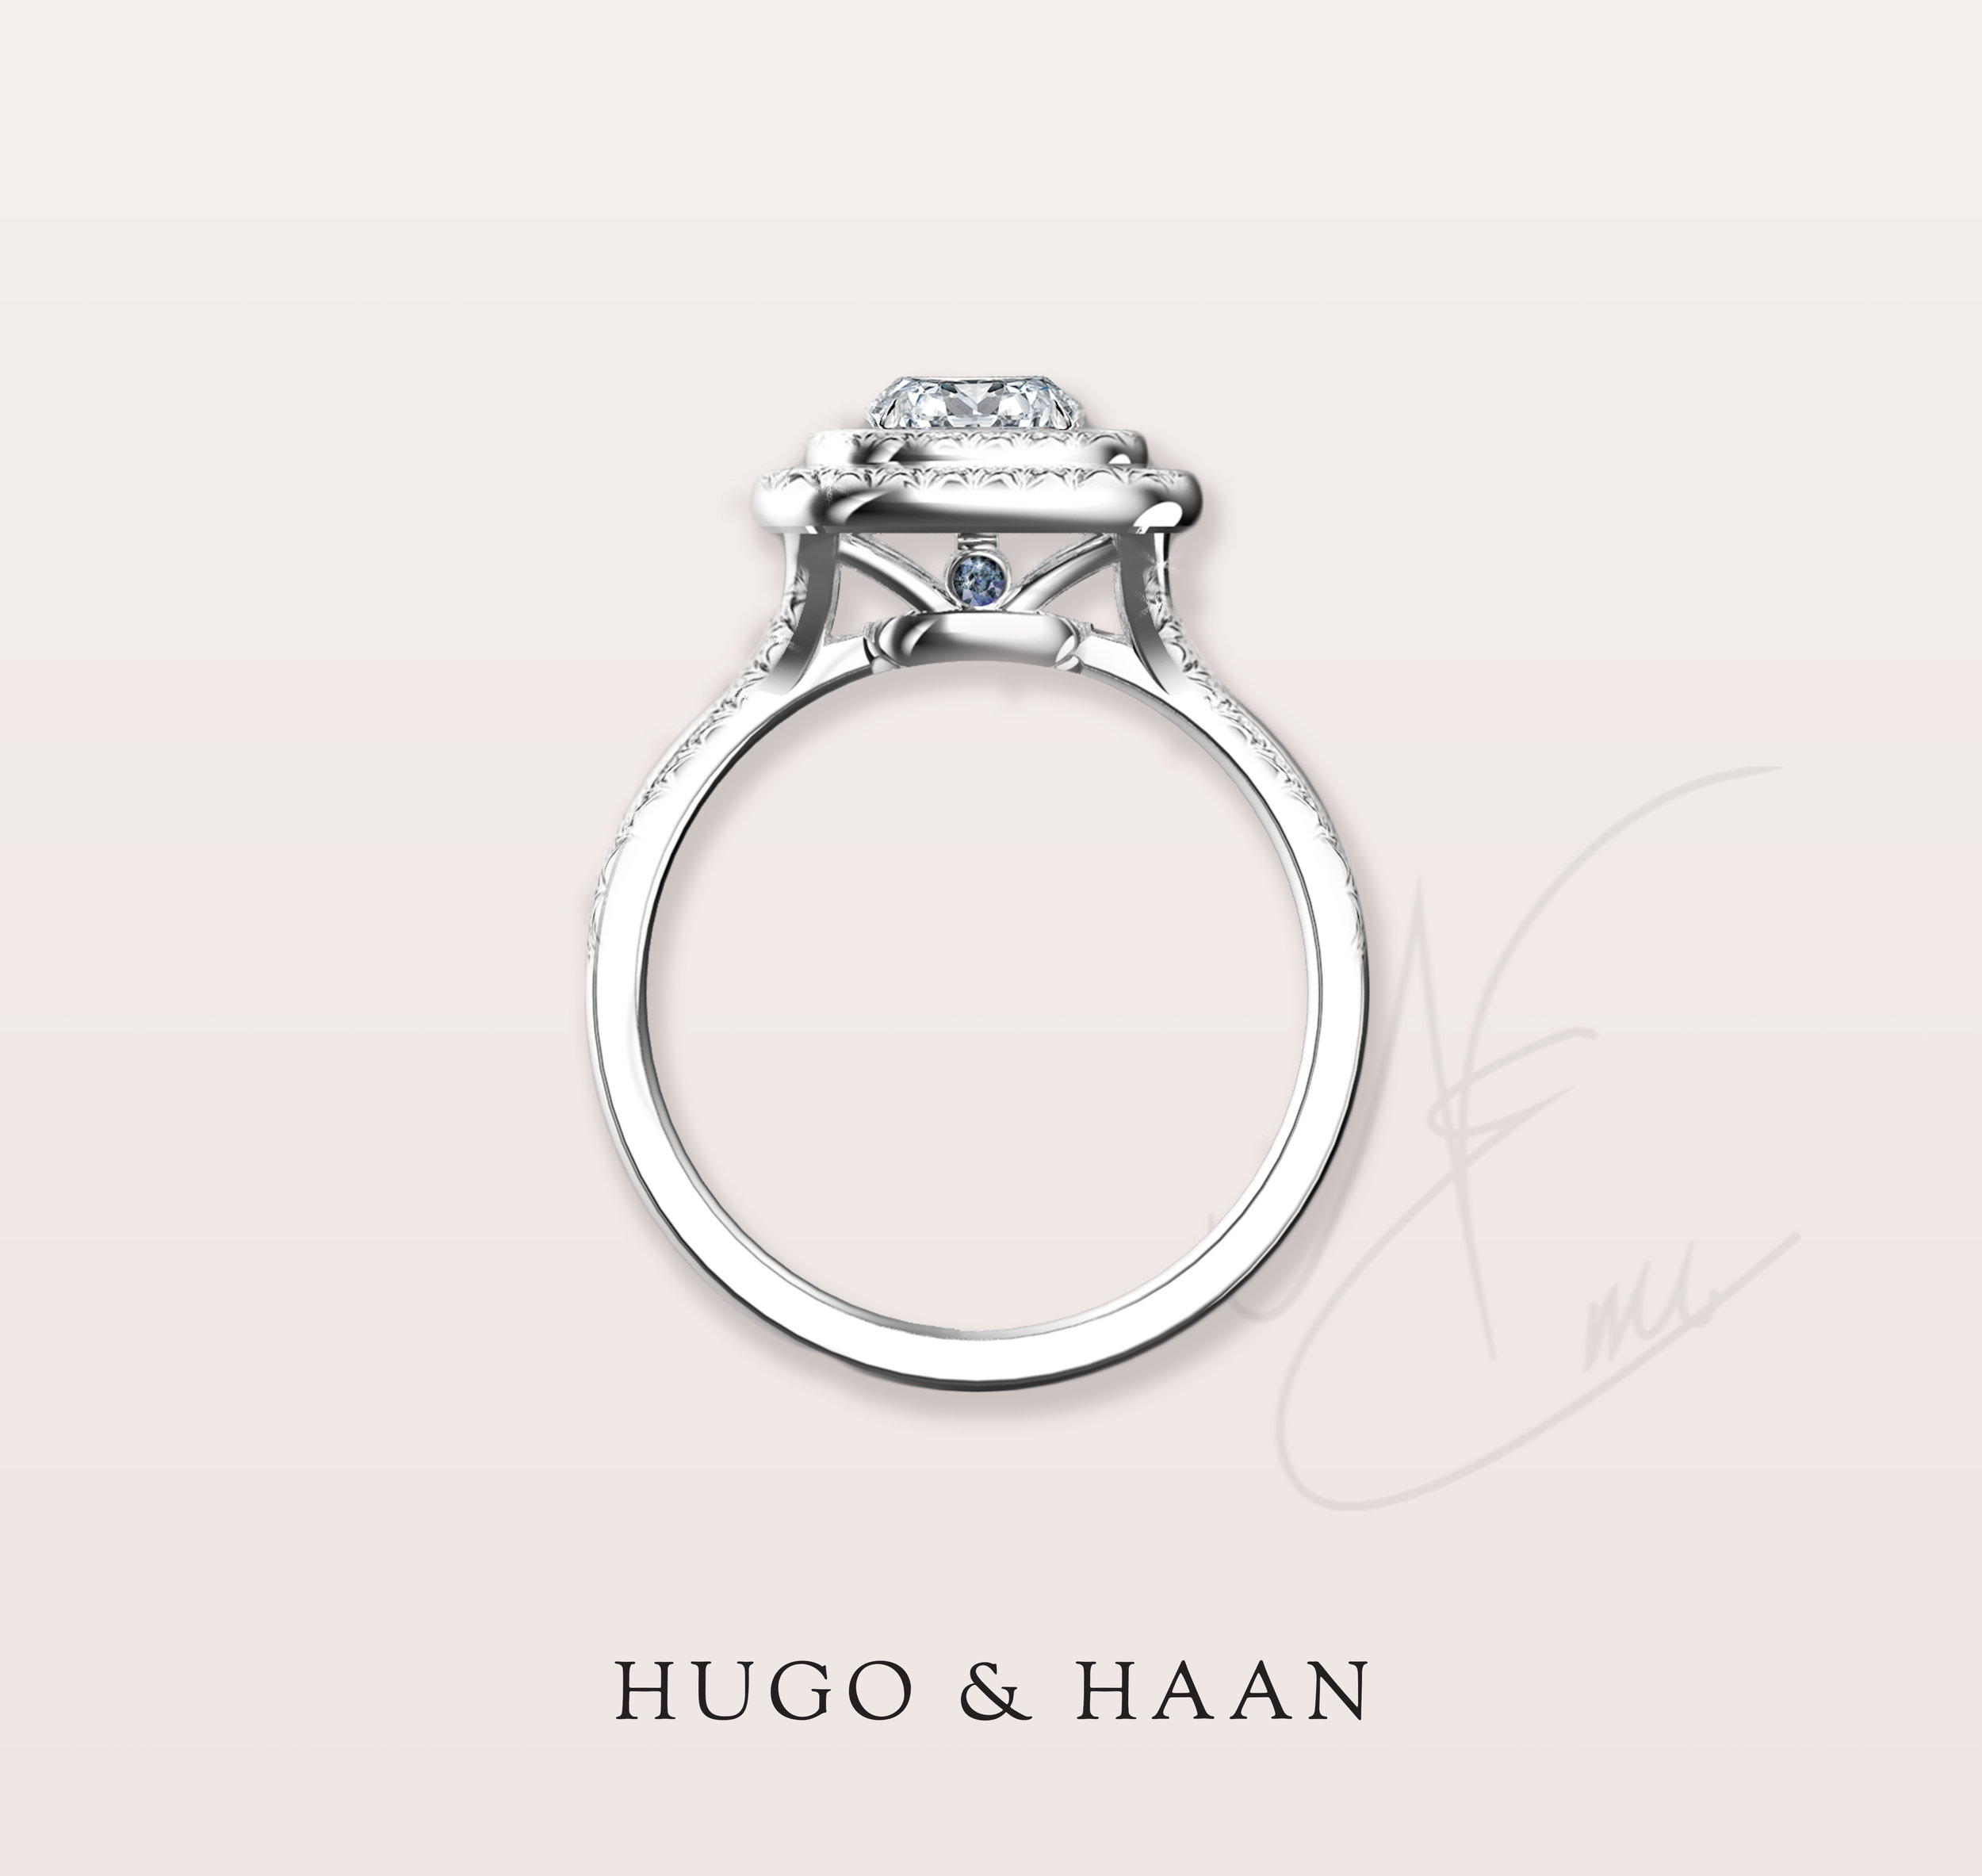 Finalising personal details - After choosing the central diamond together, we added a personalized detail under the setting. On both sides of the design we added the birthstone of the bride - aquamarine, for the month of March.